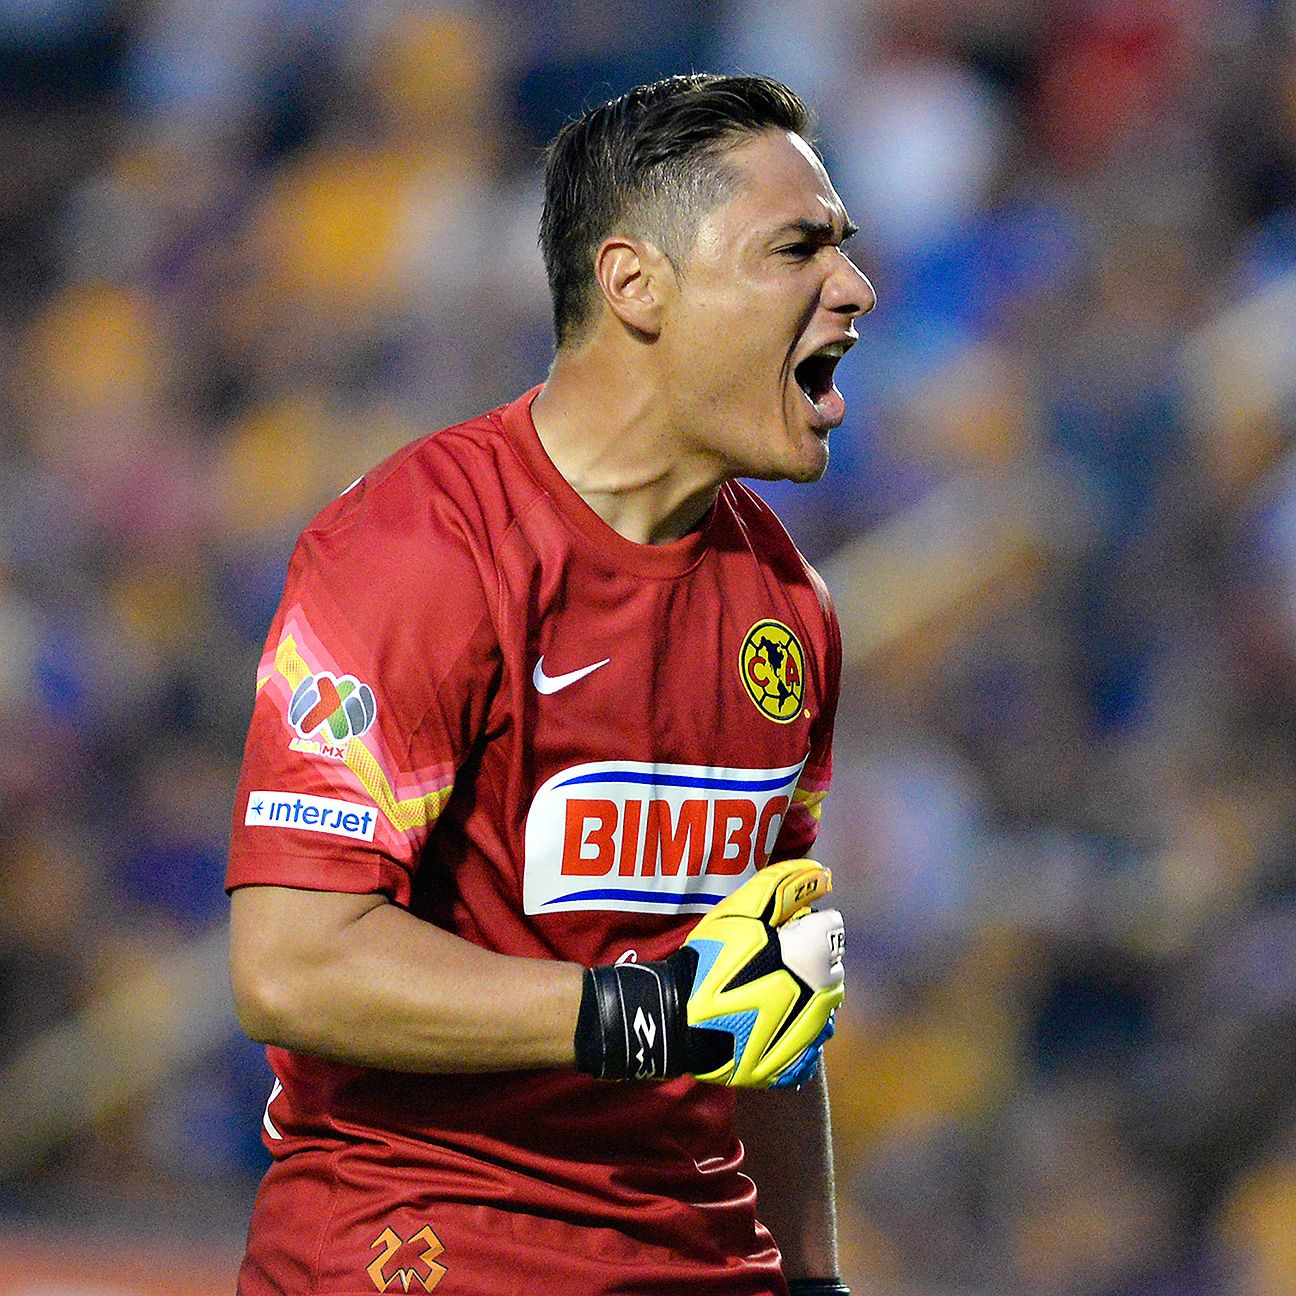 Veteran Club America goalkeeper Moises Munoz will be tasked with putting the clamps on the Chivas attack.